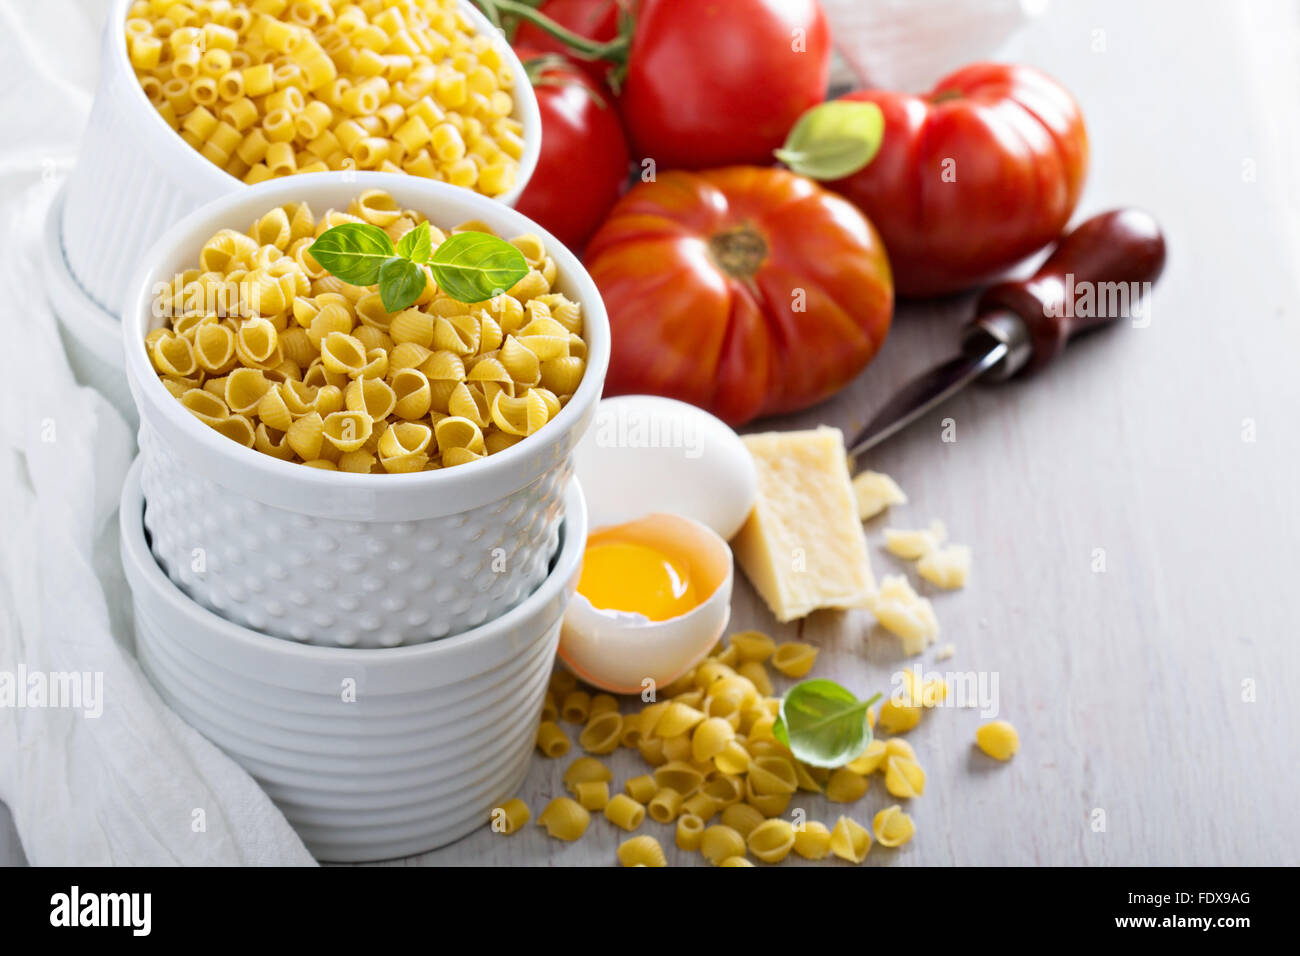 Ingredients for cooking pasta casserole with eggs and cheese - Stock Image